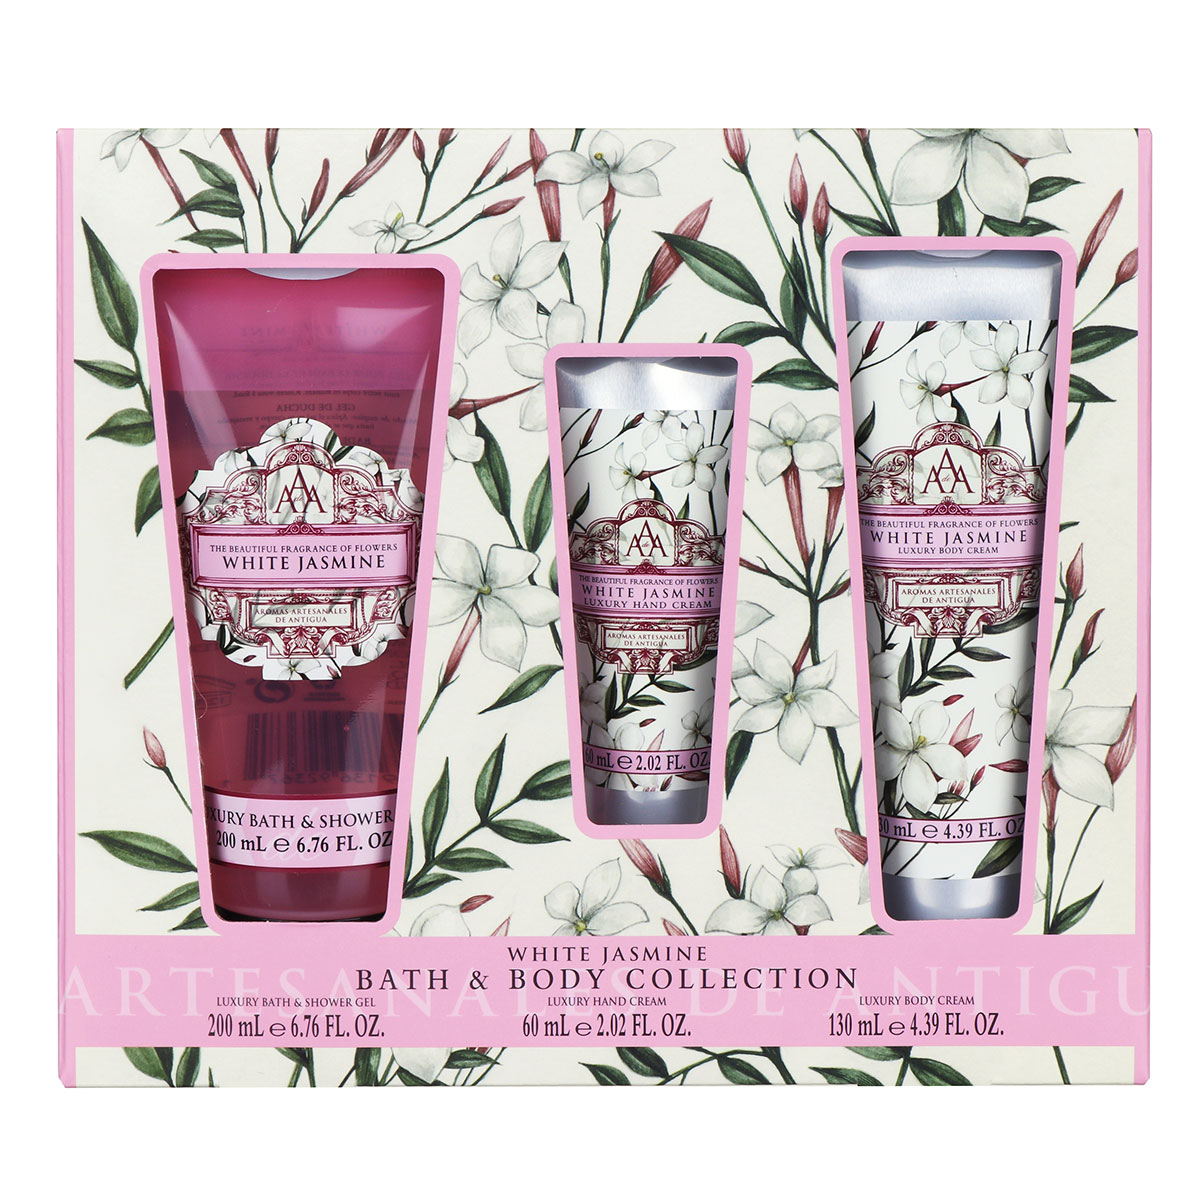 The Somerset Toiletry Co AAA White Jasmine Bath & Body Collection